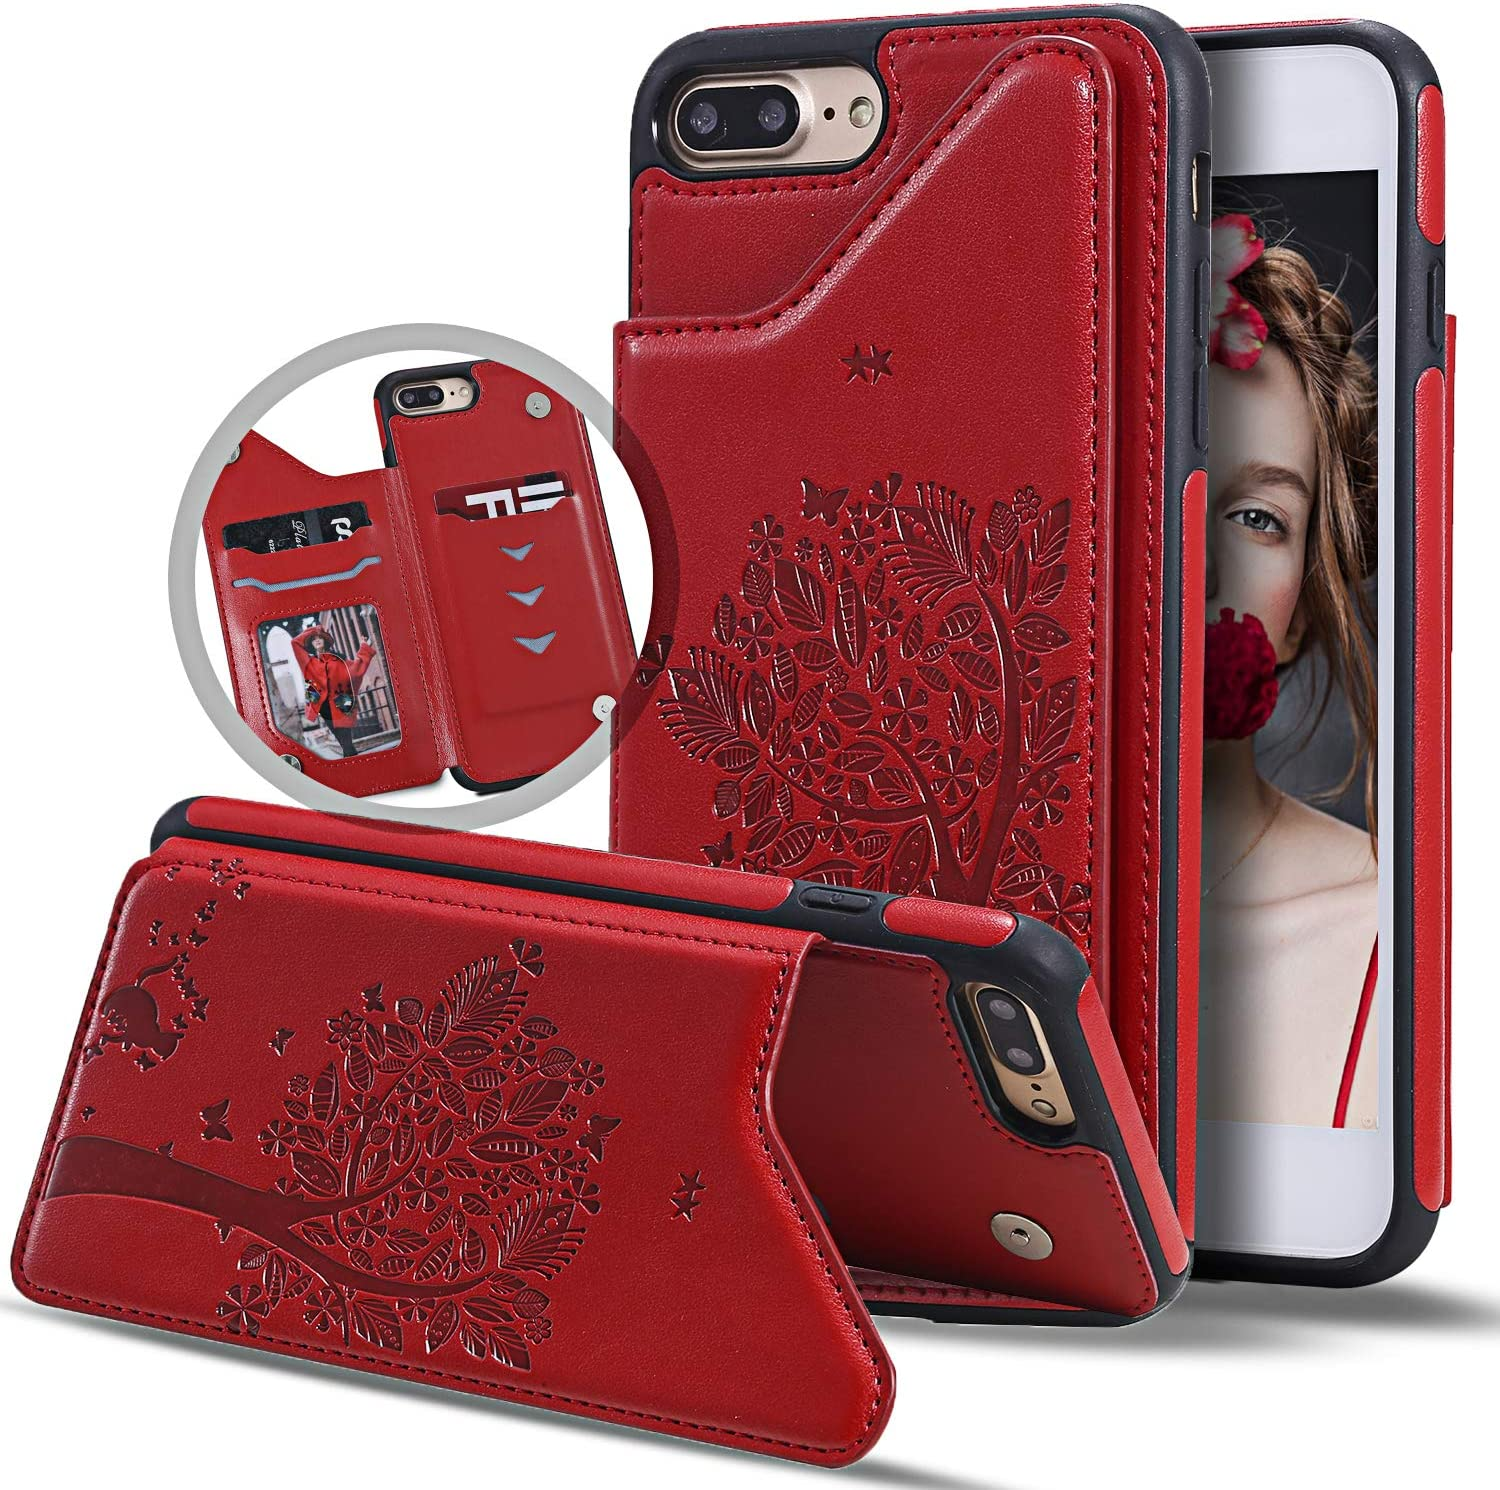 Vodico iPhone 8 Plus Wallet Case,iPhone 7 Plus Case with Card Holder for Women, Durable Folio Flip Slim Fit Vintage Leather Wallet Back Magnetic Closure Cover with Credit Card Slots&Stand (Wine Red)